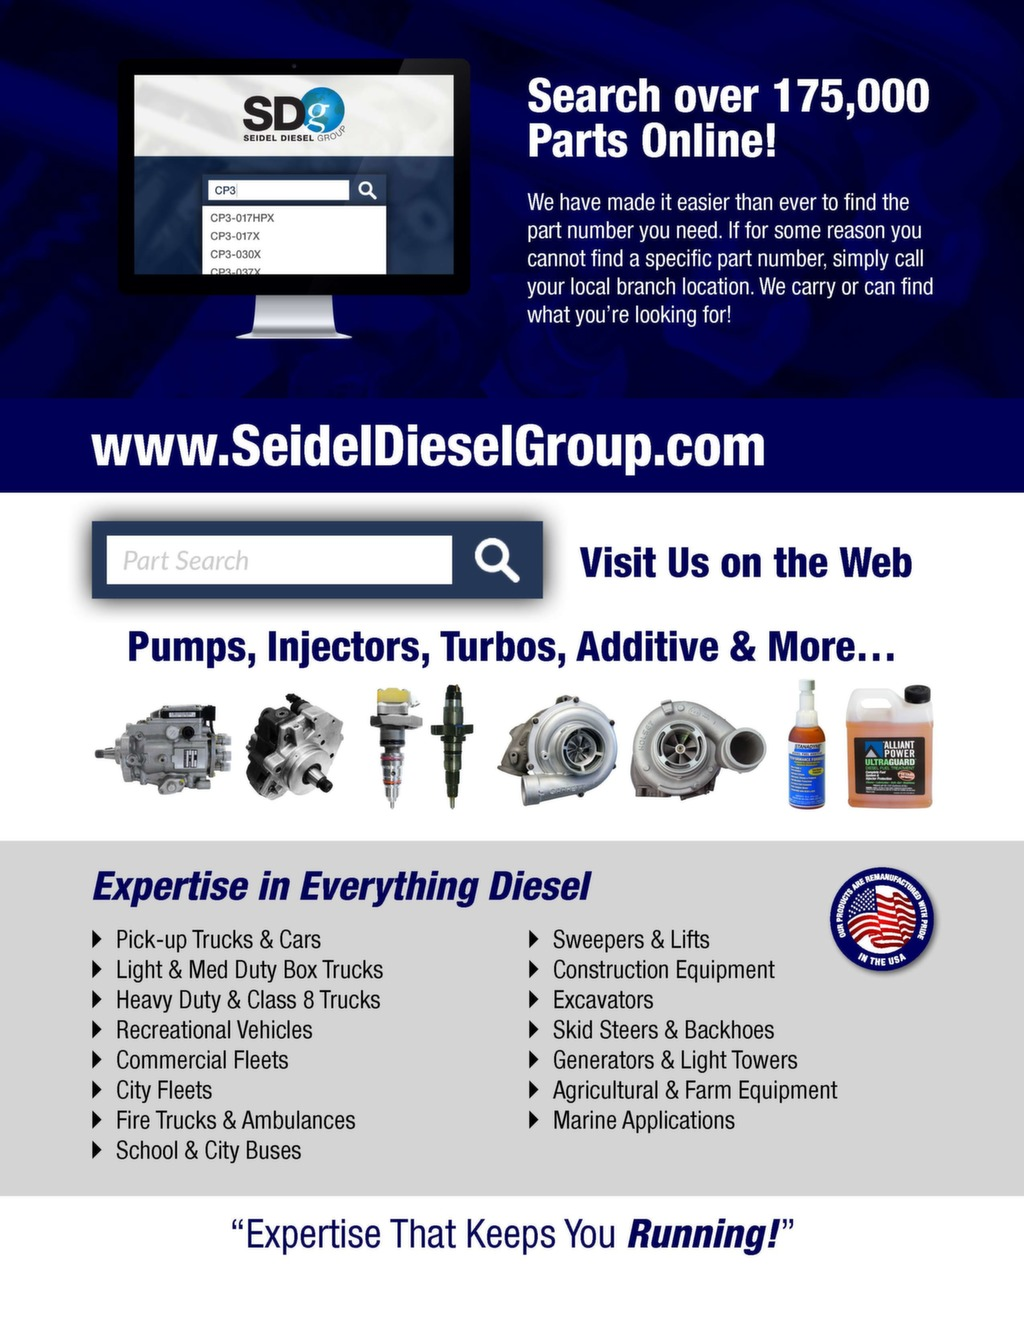 SDG Brochure – Seidel Diesel Group